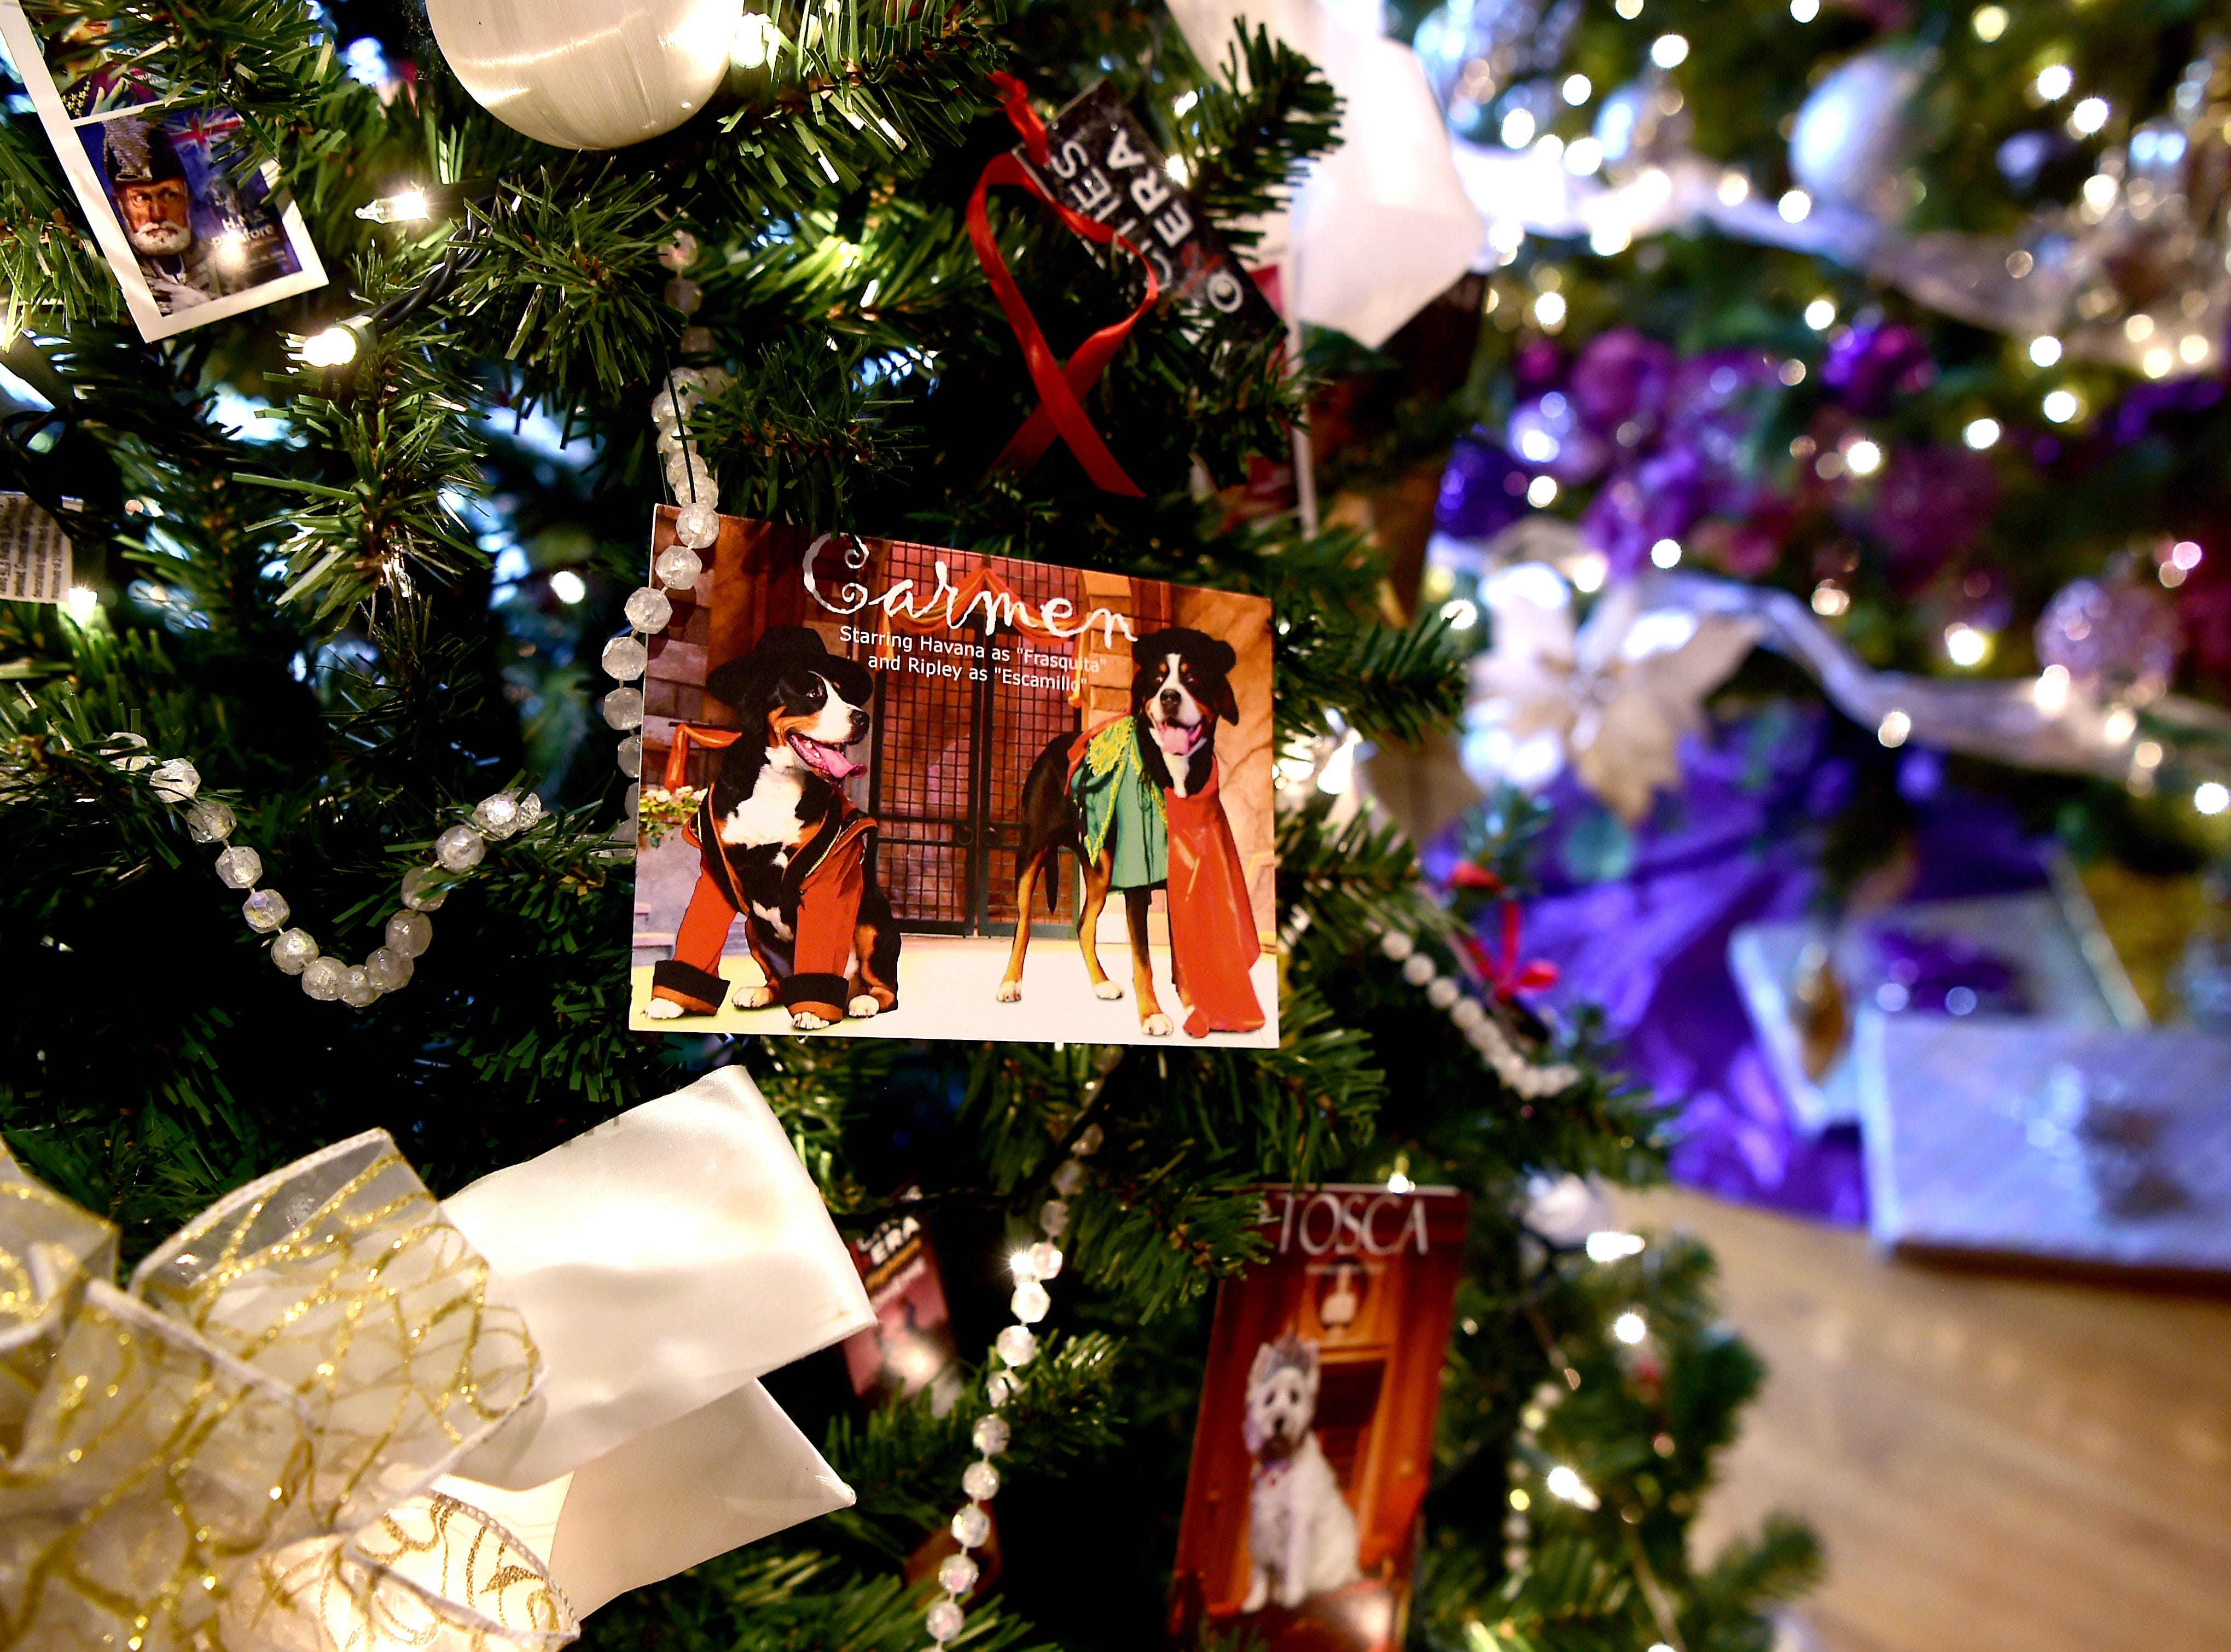 Tri Cities Opera tree. Roberson Museum and Science Center's annual Home for the Holidays event opens on November 14 and continues through January 6. The event features hundreds of elaborately decorated holiday trees and displays. November 12, 2018.